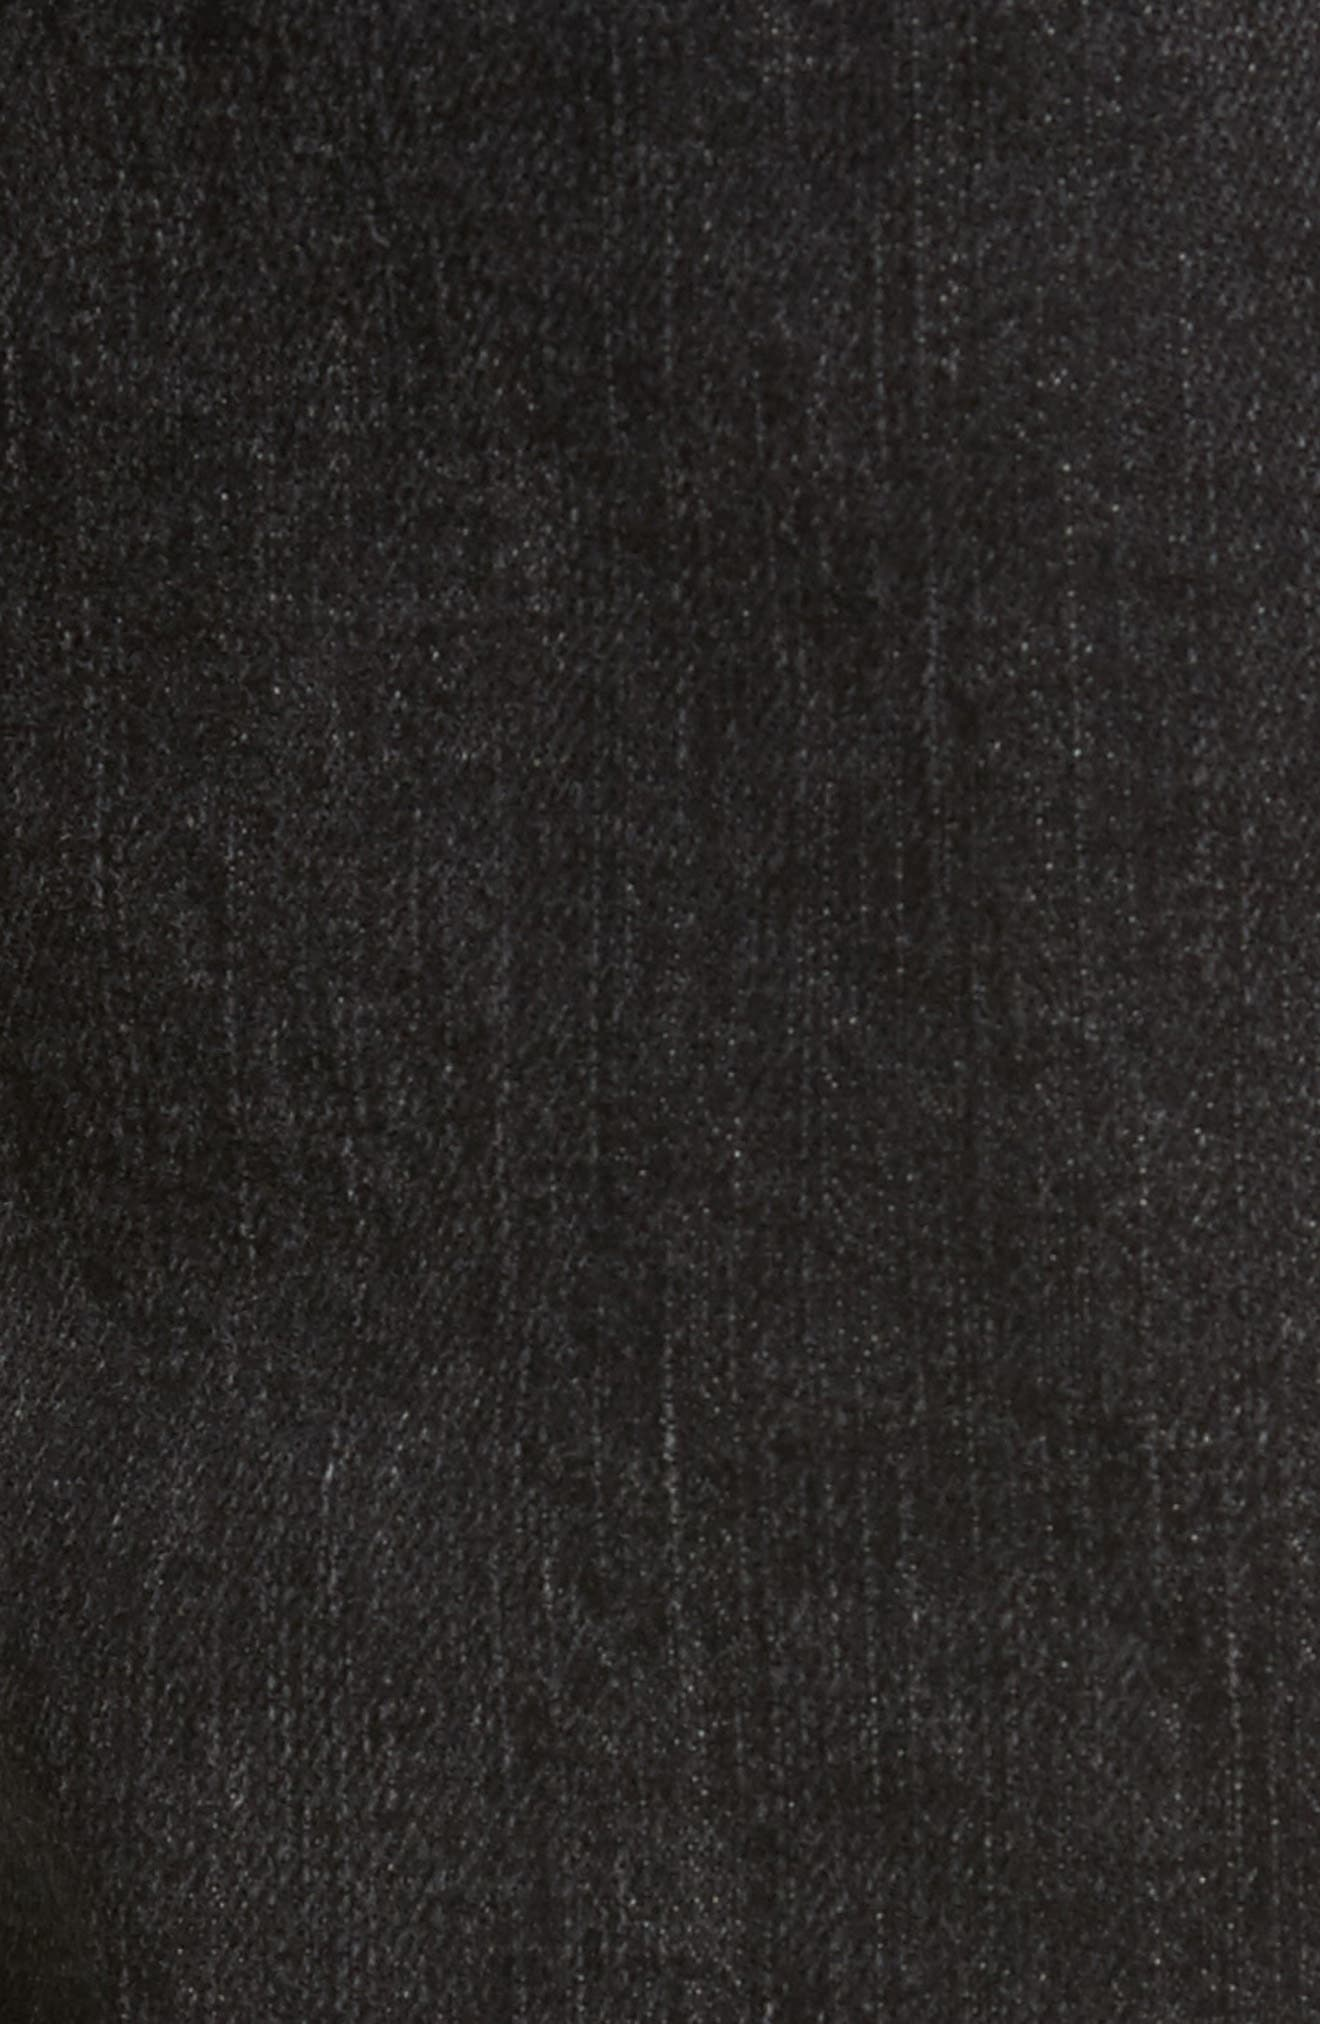 Baxter Ripped Jeans,                             Alternate thumbnail 5, color,                             001